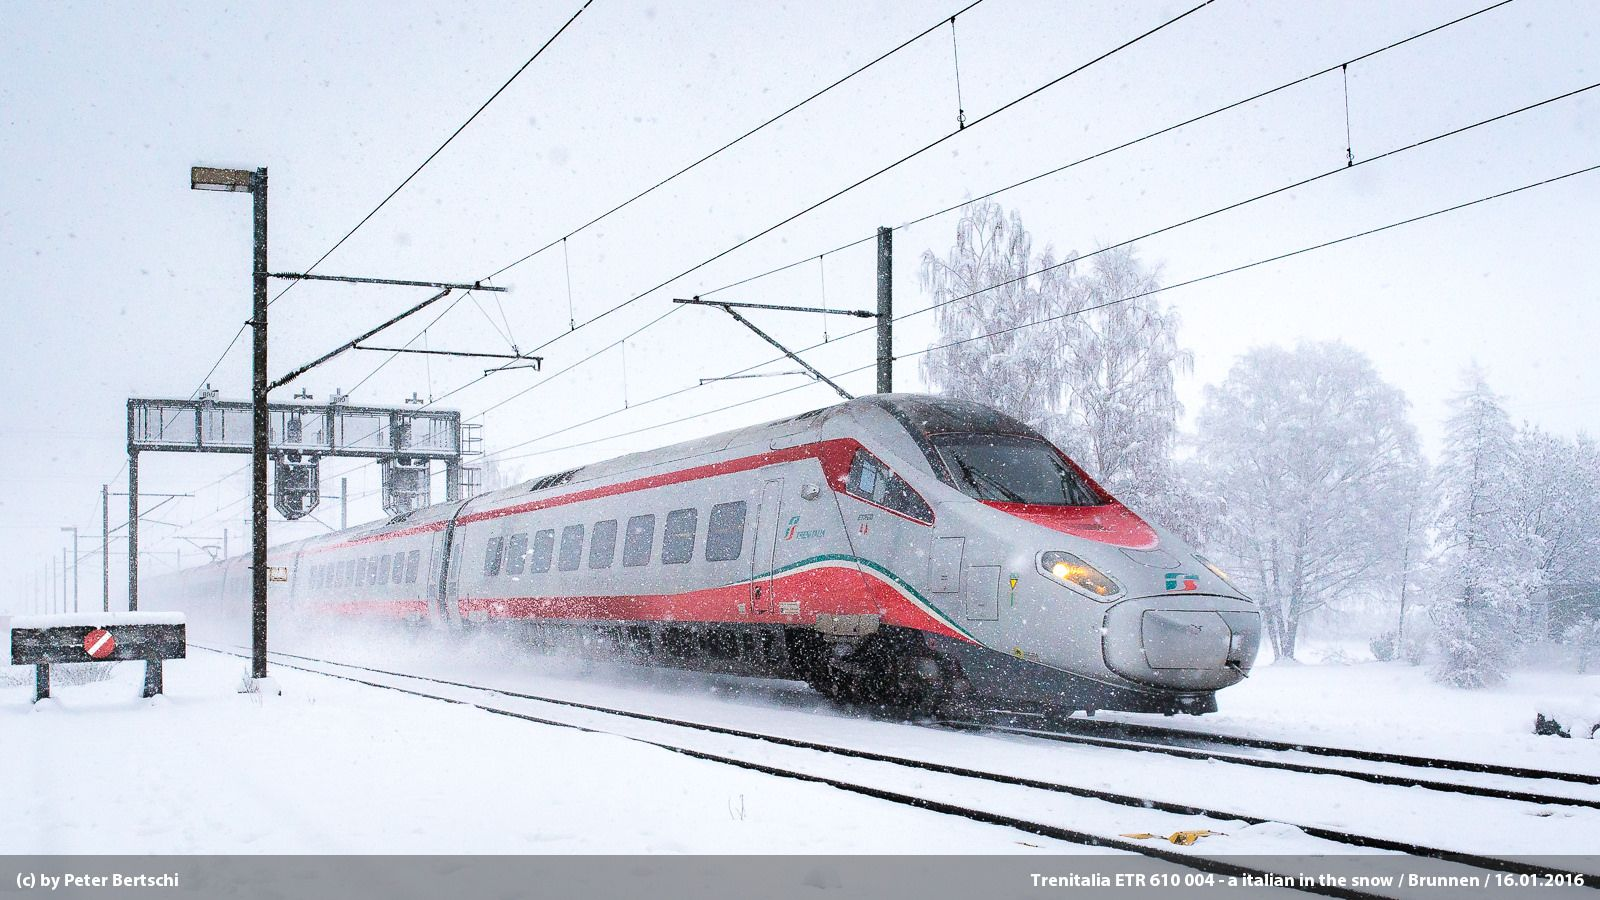 Trenitalia Etr 610 004 A Italian In The Snow Train Train Pictures Train Art